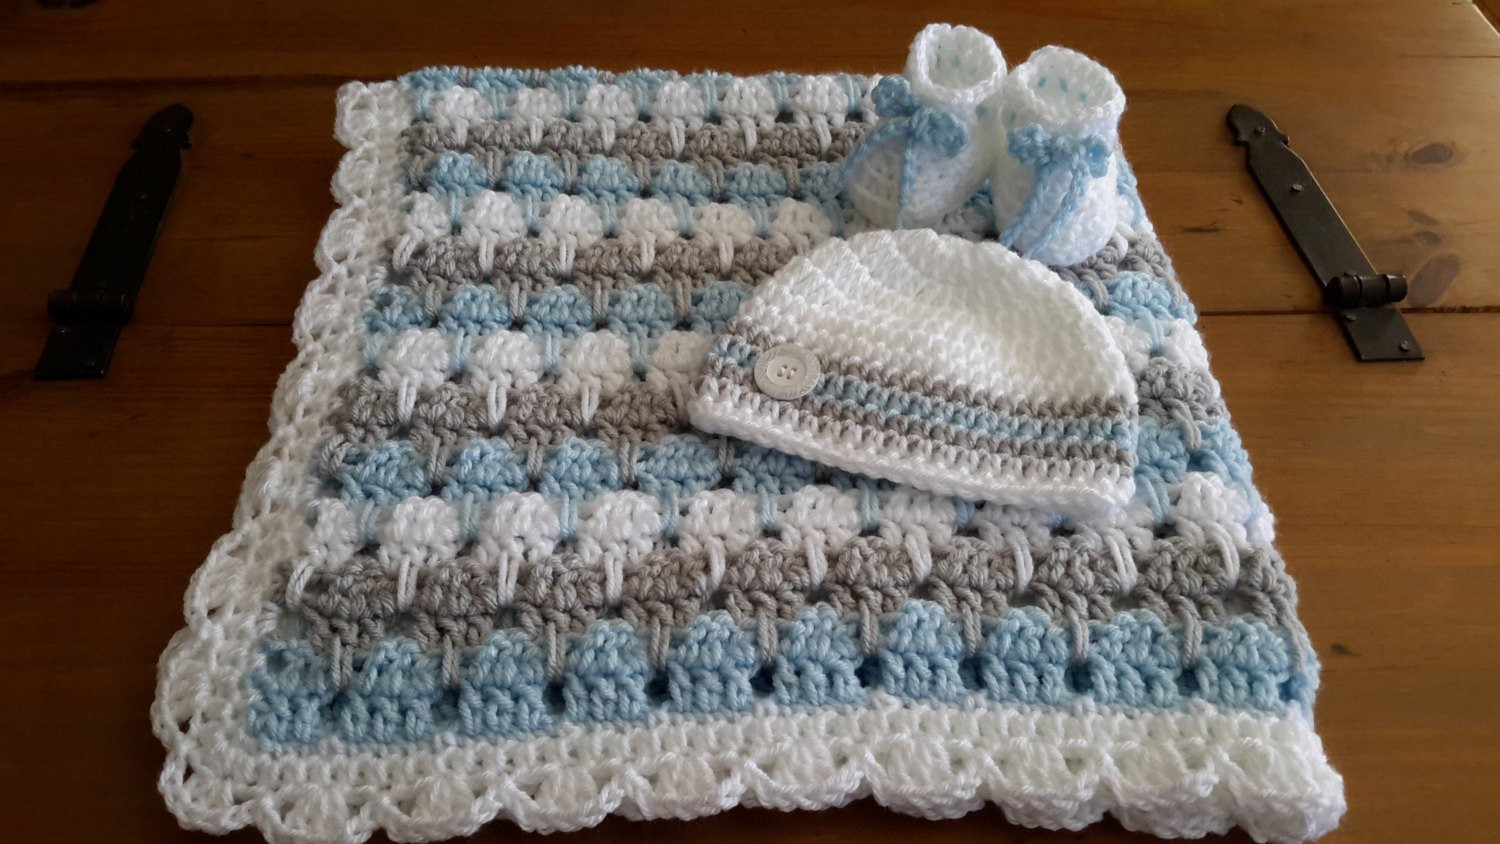 Baby Boy Crochet Blanket Patterns Lovely Baby Boy Blanket Crochet Stripe Crochet Blanket Afghan Of Baby Boy Crochet Blanket Patterns Beautiful Pics for Crochet Baby Boy Blanket Patterns